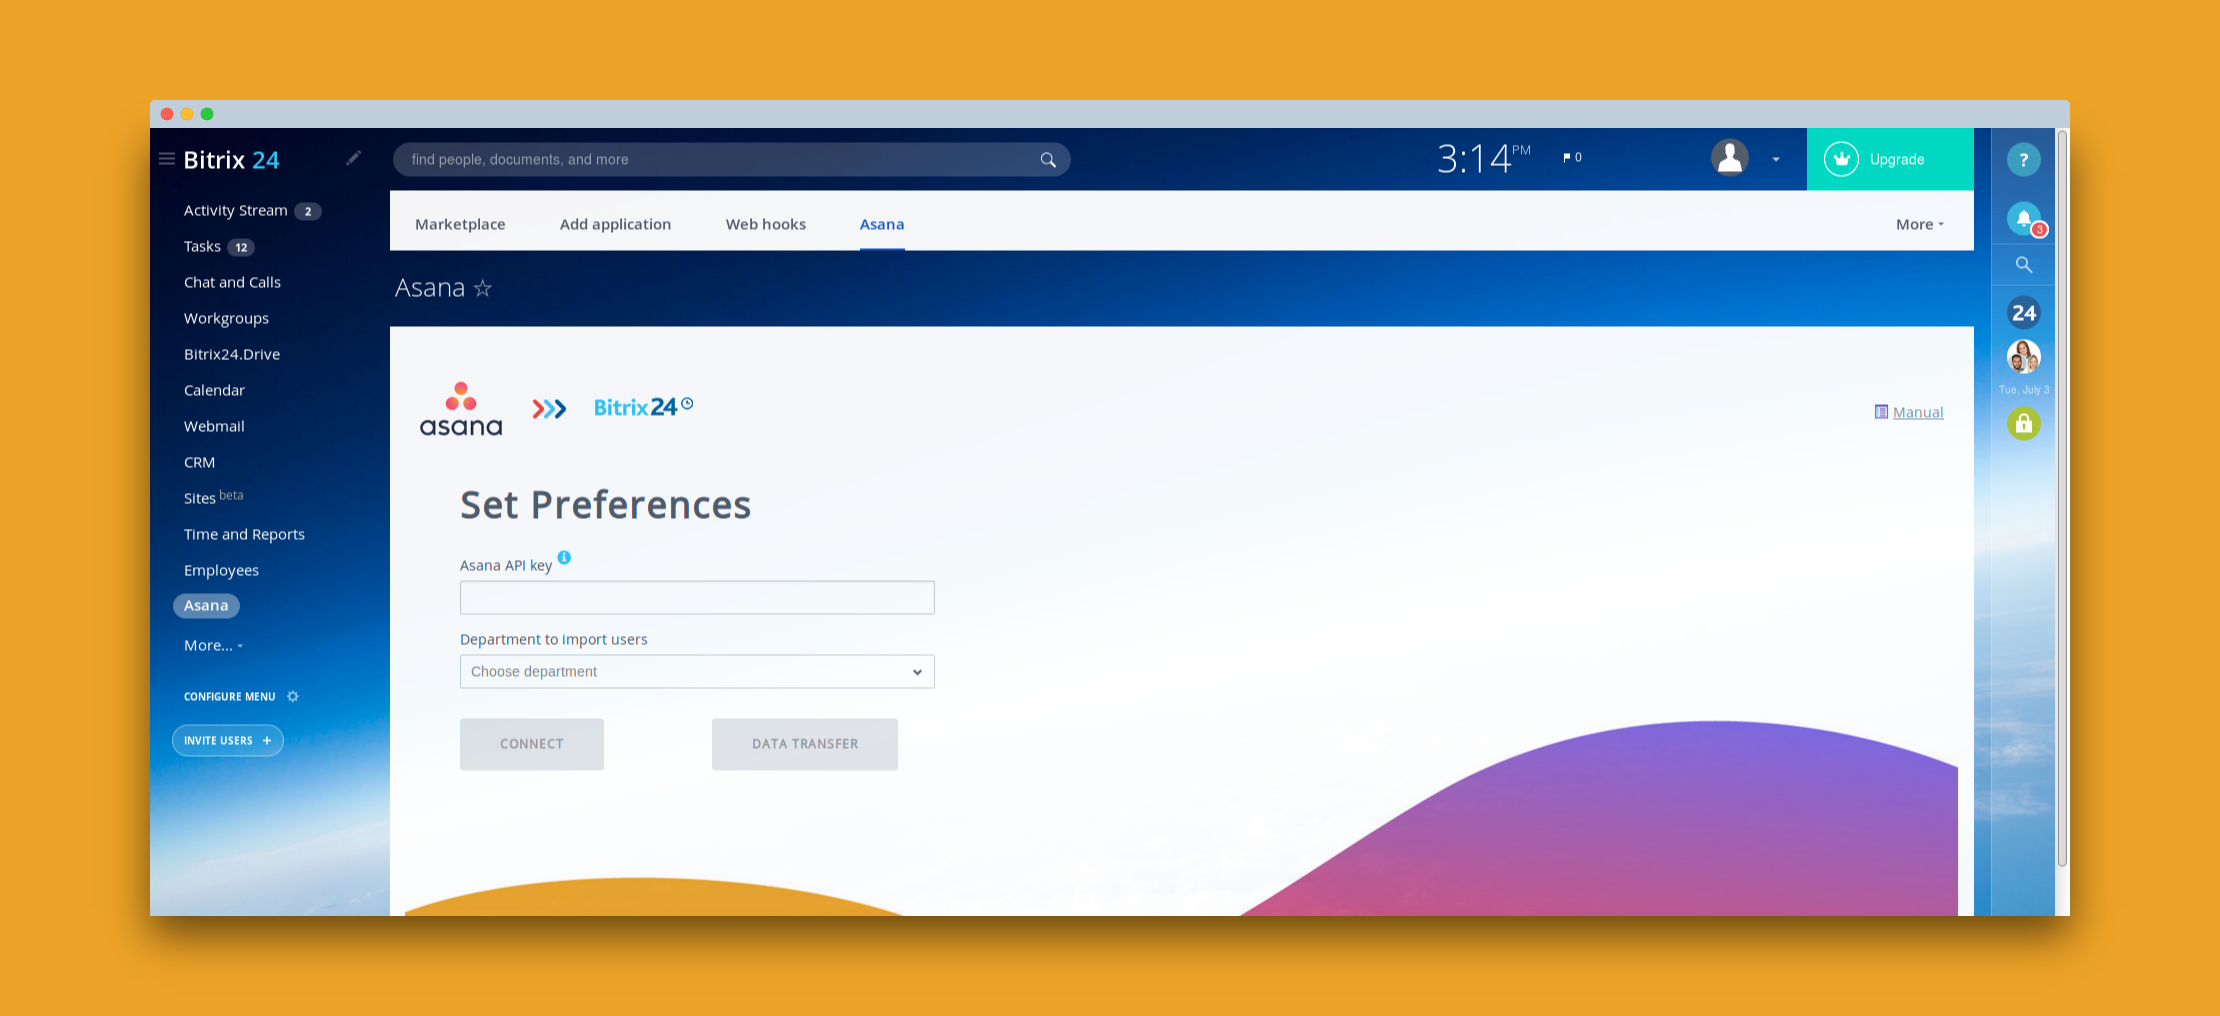 Migrate From Asana To Bitrix24 Easily!